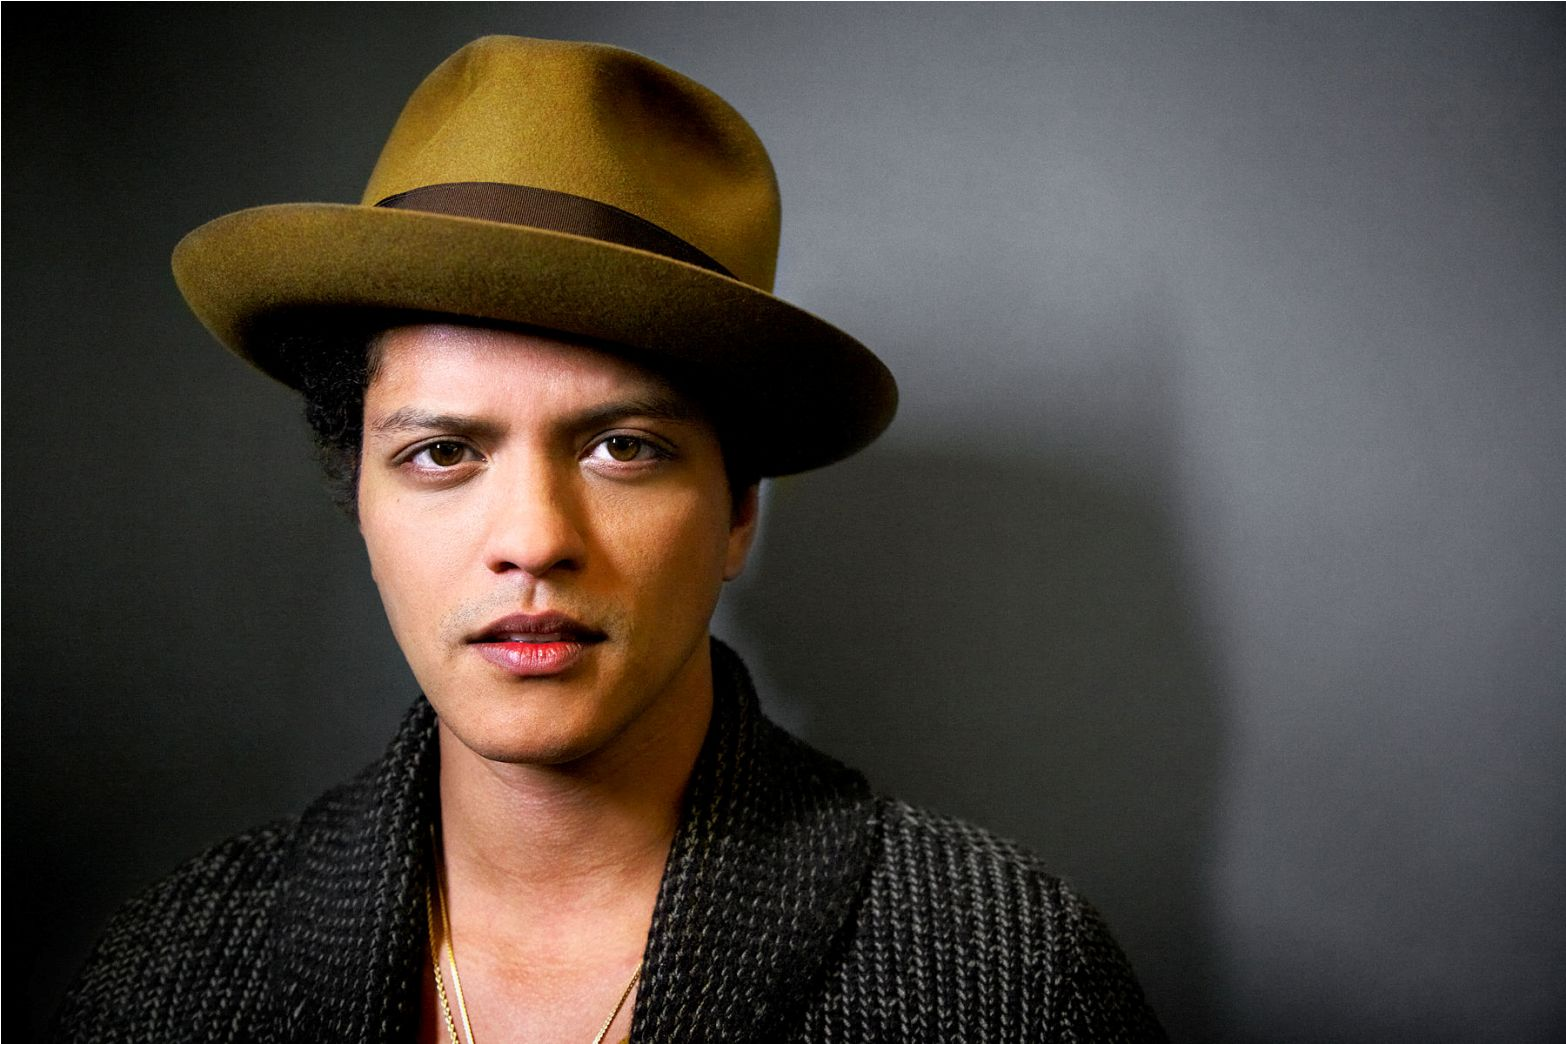 Bruno Mars Wallpapers HD Backgrounds Images Pics Photos 1566x1044